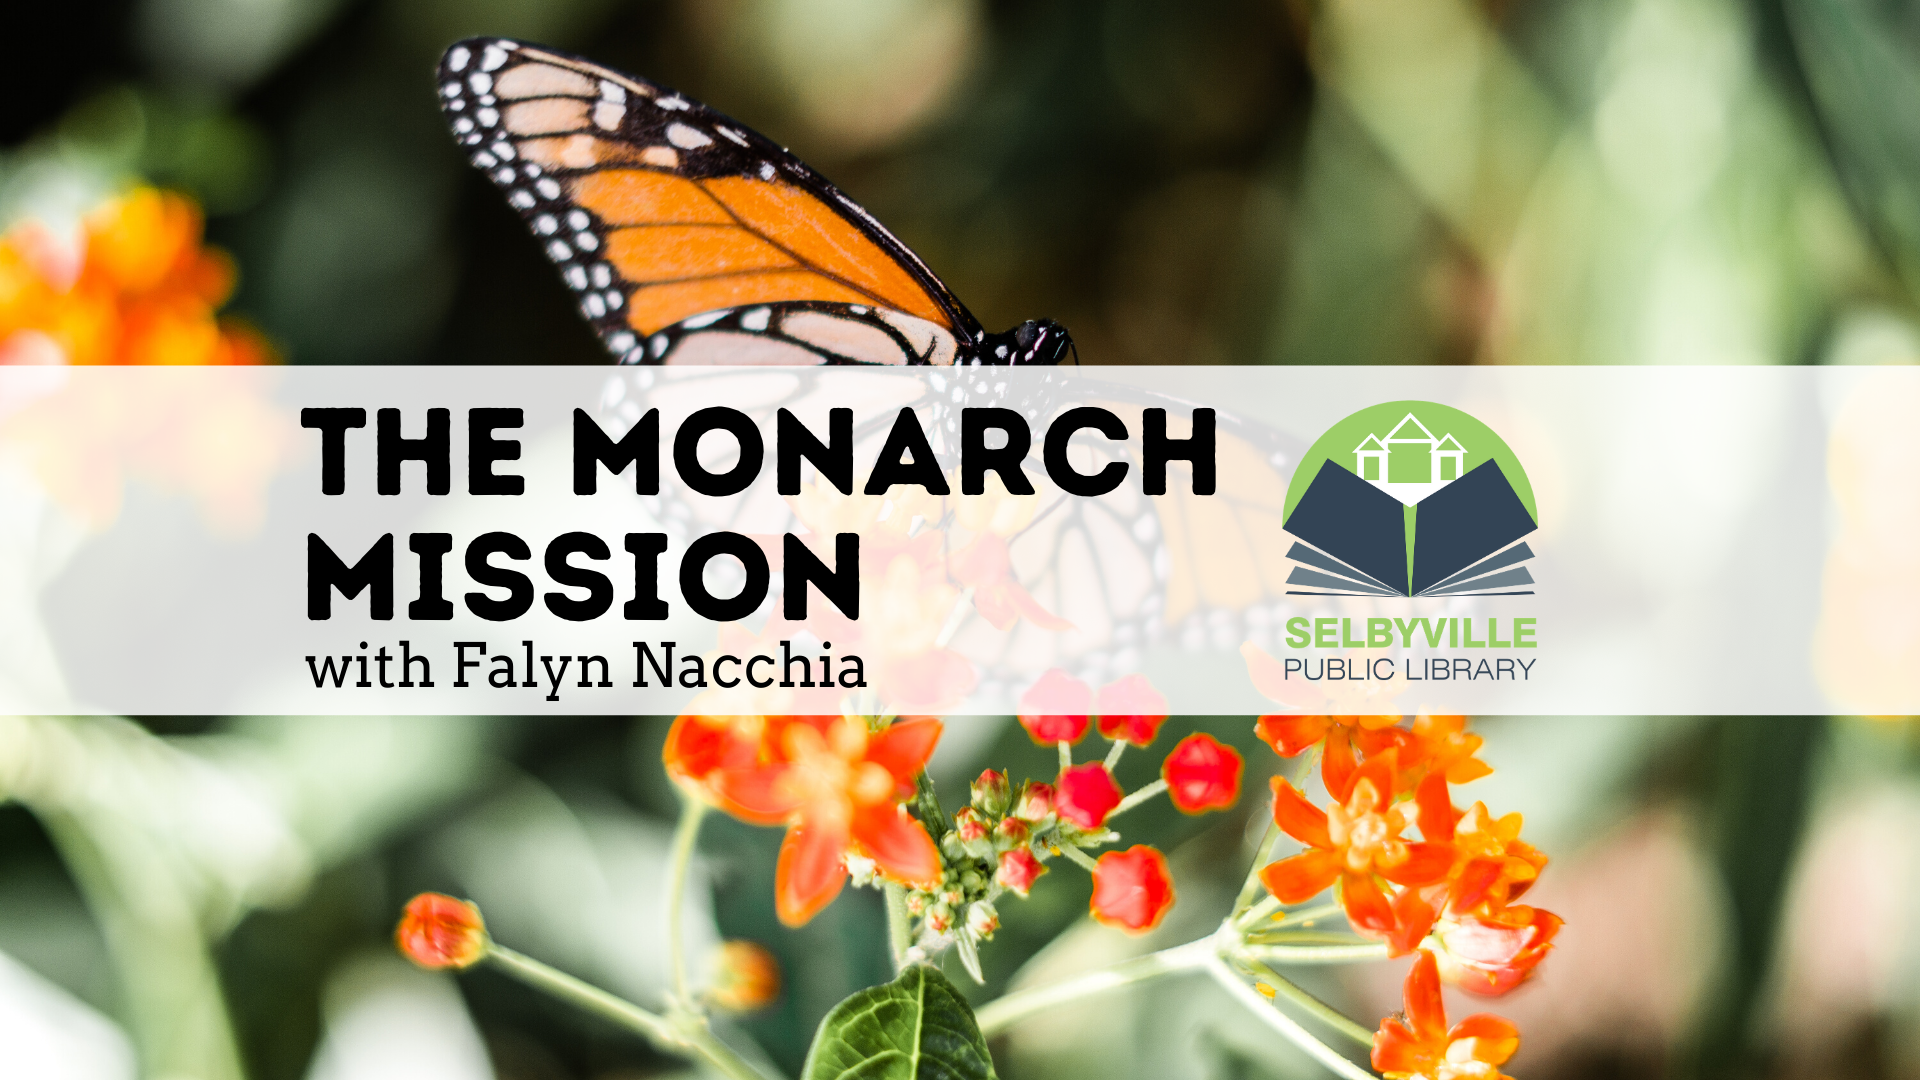 The Monarch Mission